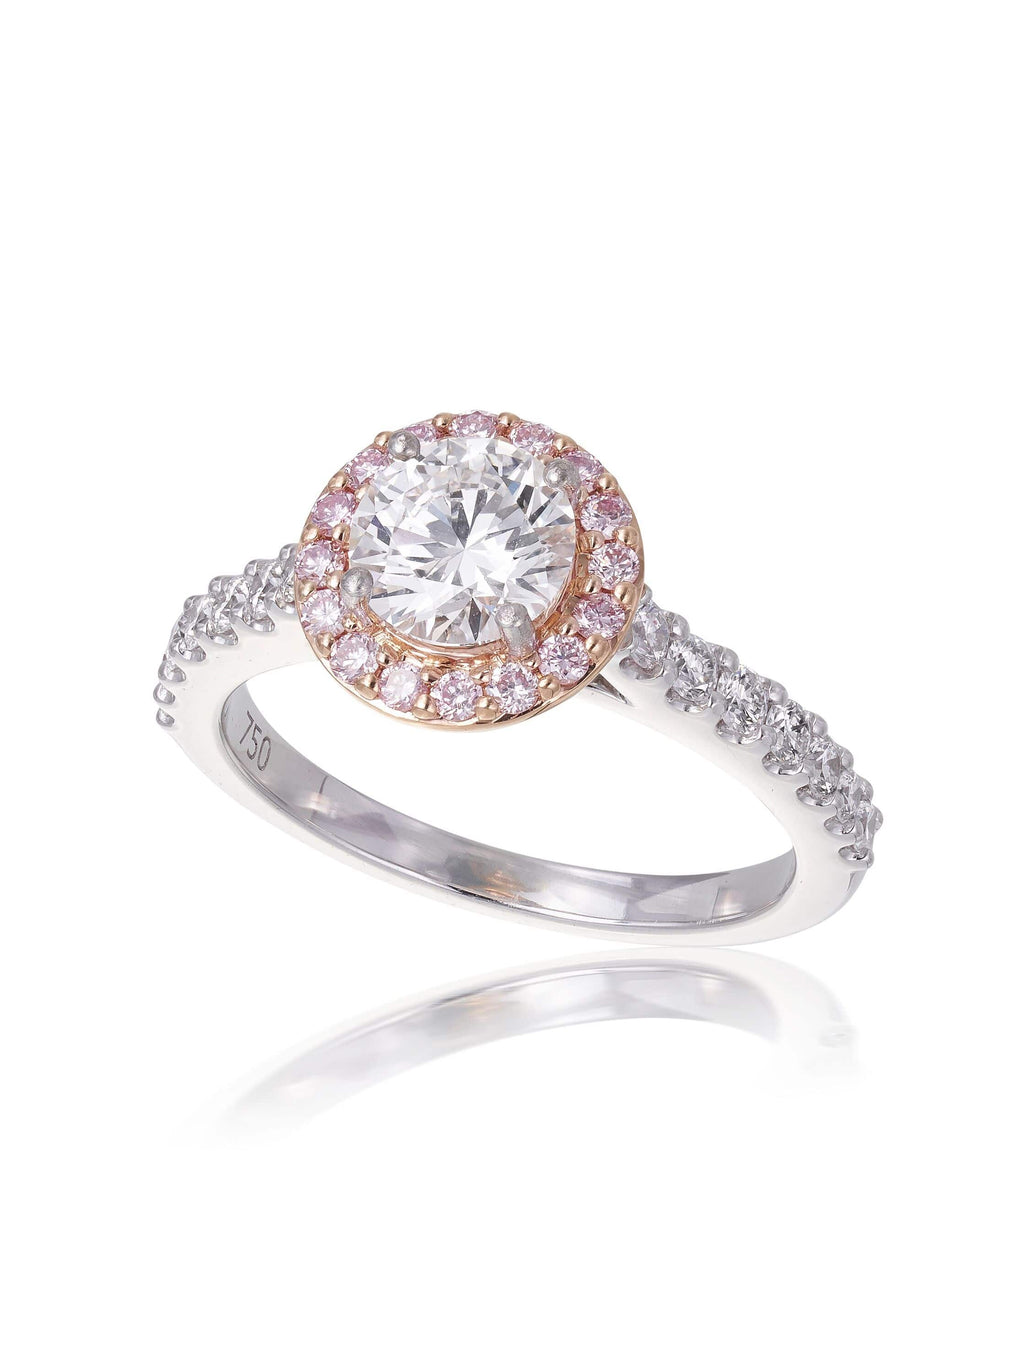 Royal Round Brilliant Cut Diamond Engagement Ring